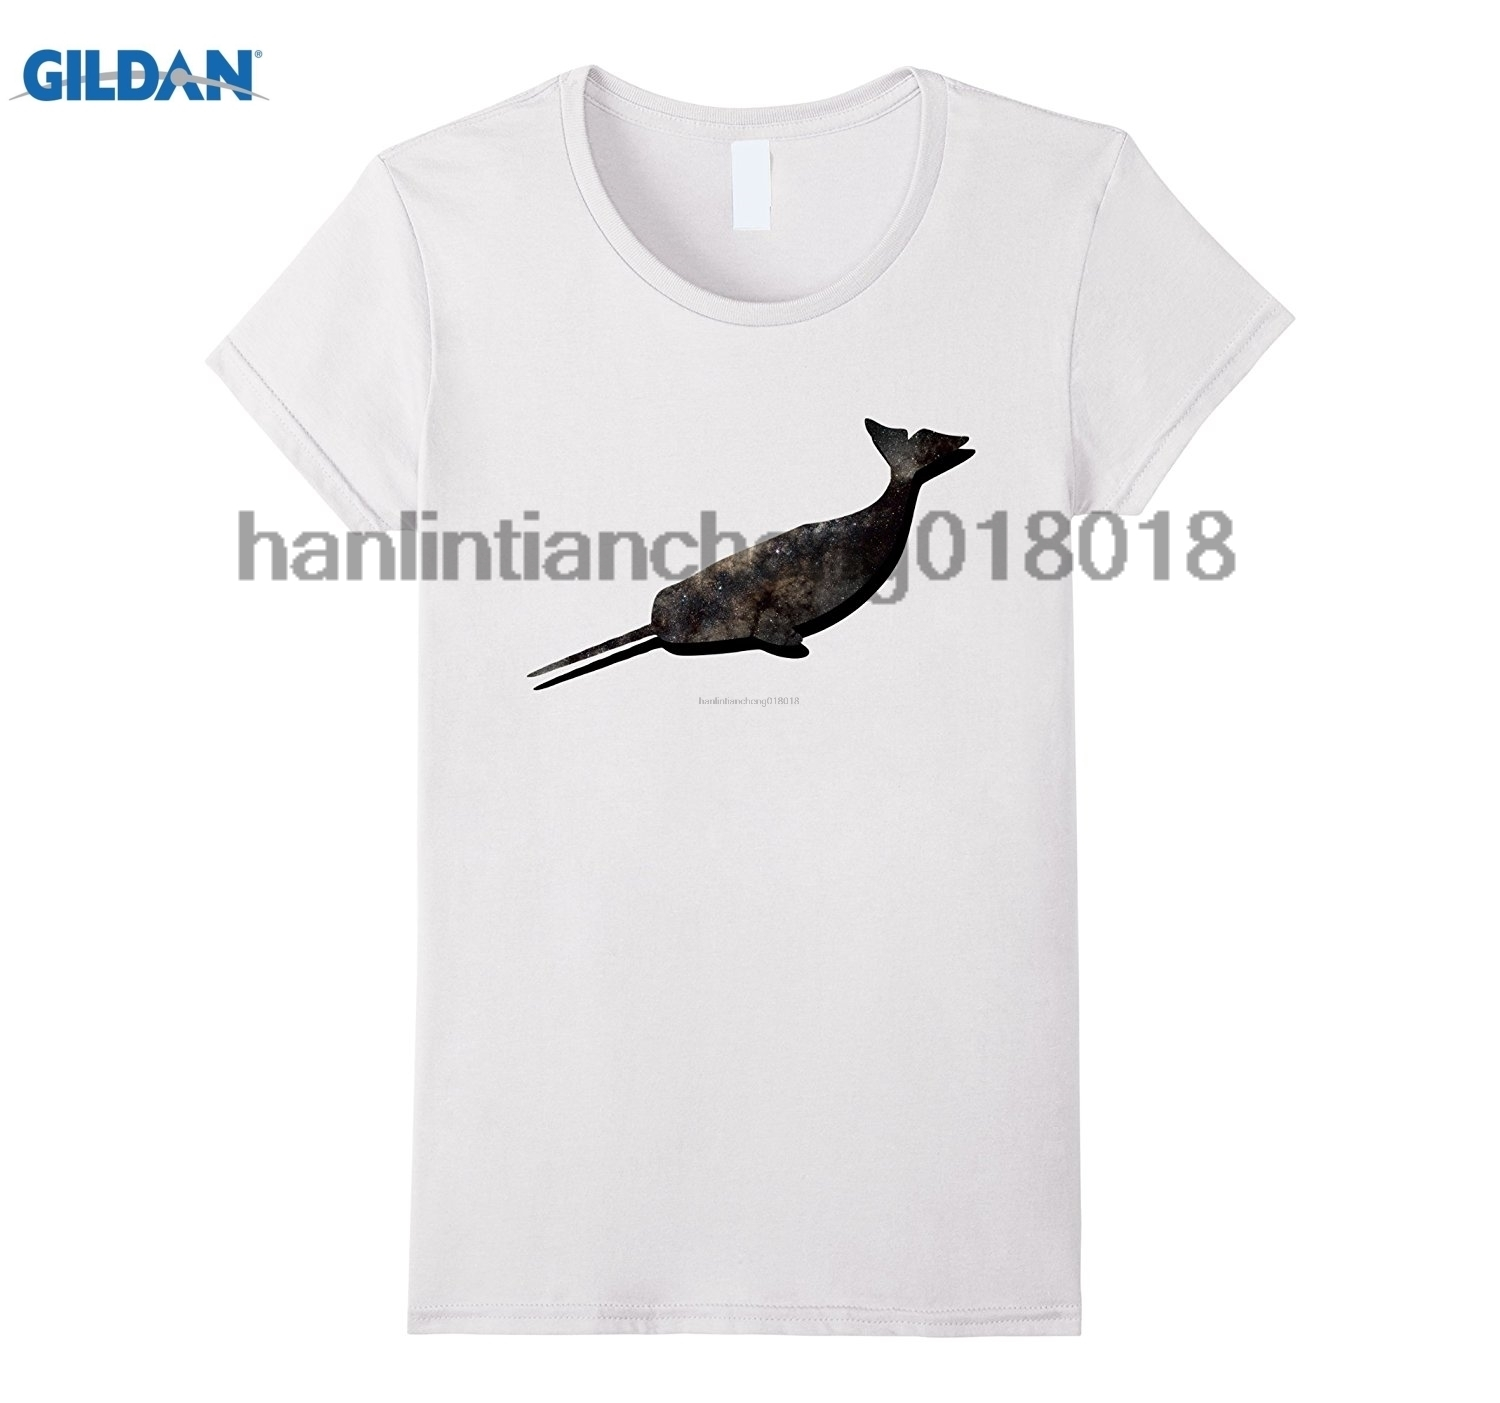 GILDAN Space Narwhal T-shirt Mens Print T-Shirts Fashion Short Sleeve T Shirt Casual Fit Tops Tees Hot tshirt